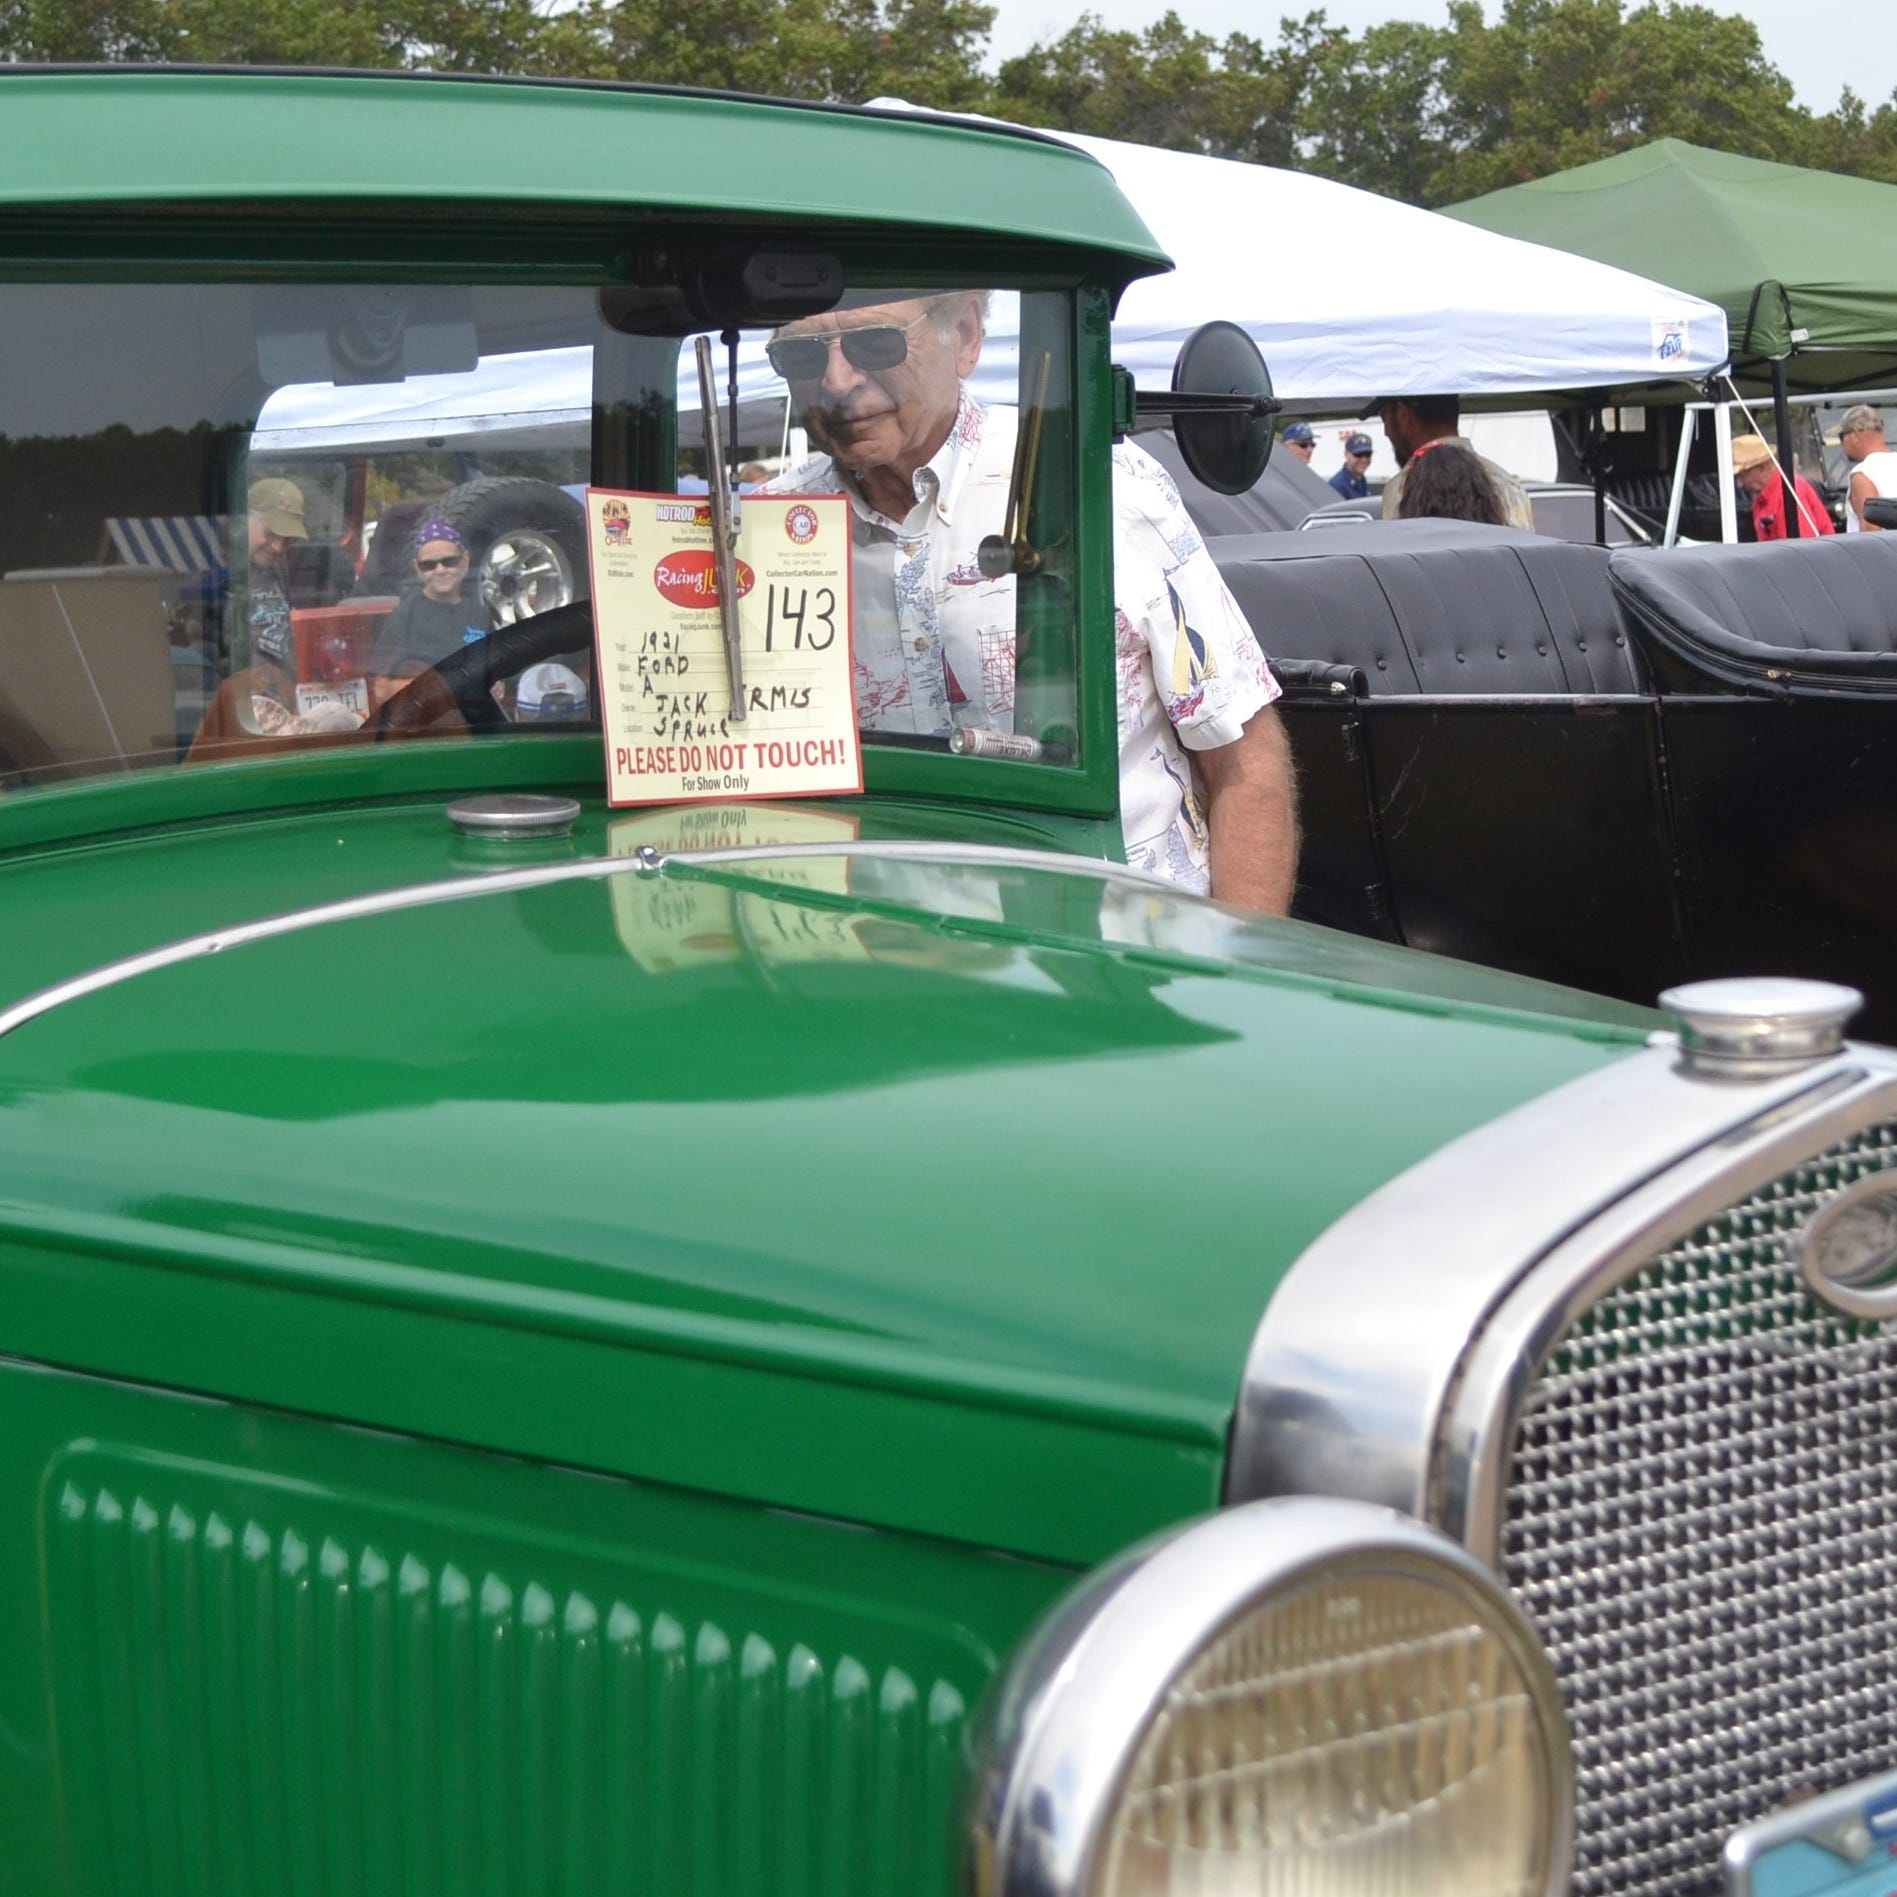 Why are more than 275 cars expected at the Oconto fly-in? Because word gets around.